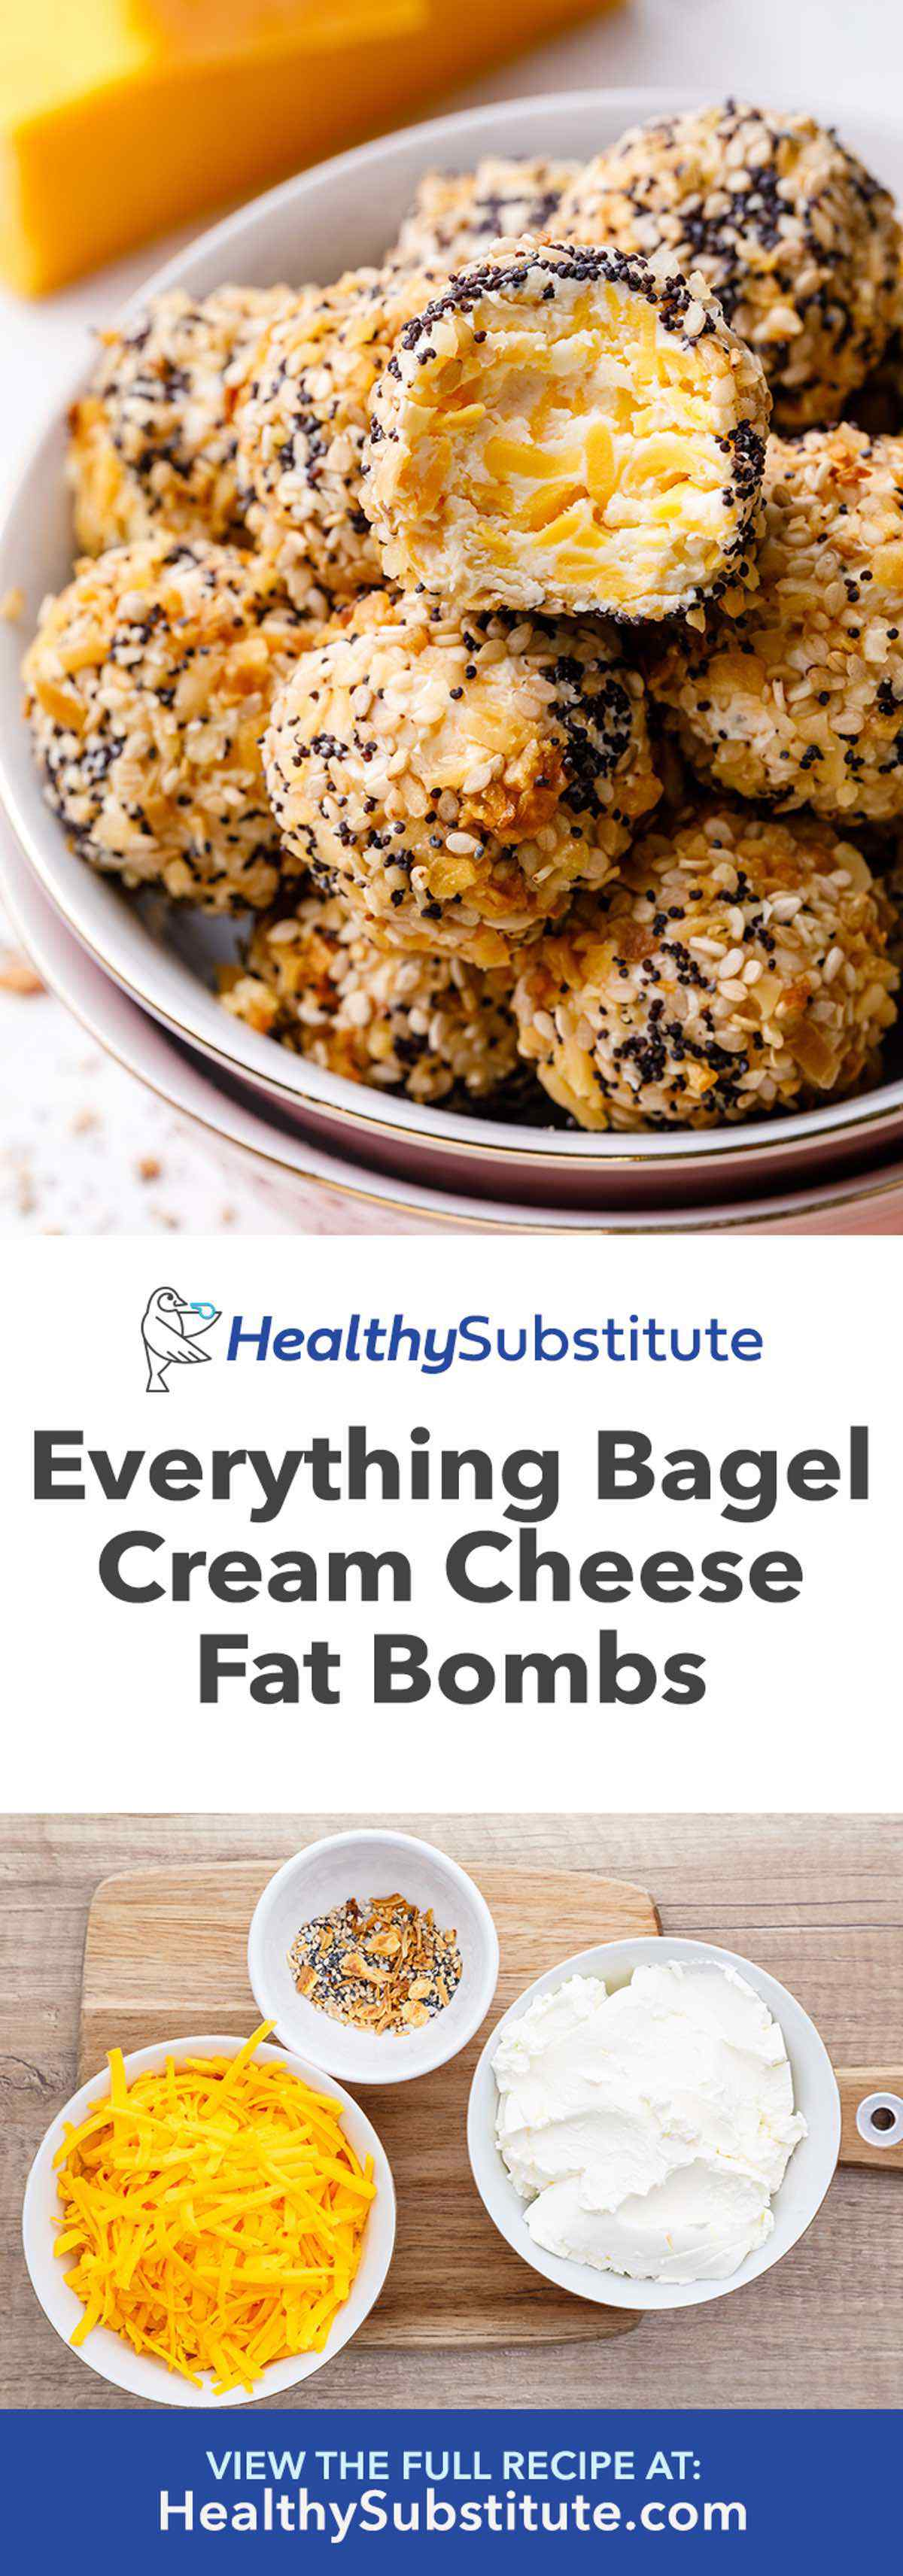 Everything Bagel Cream Cheese Fat Bombs